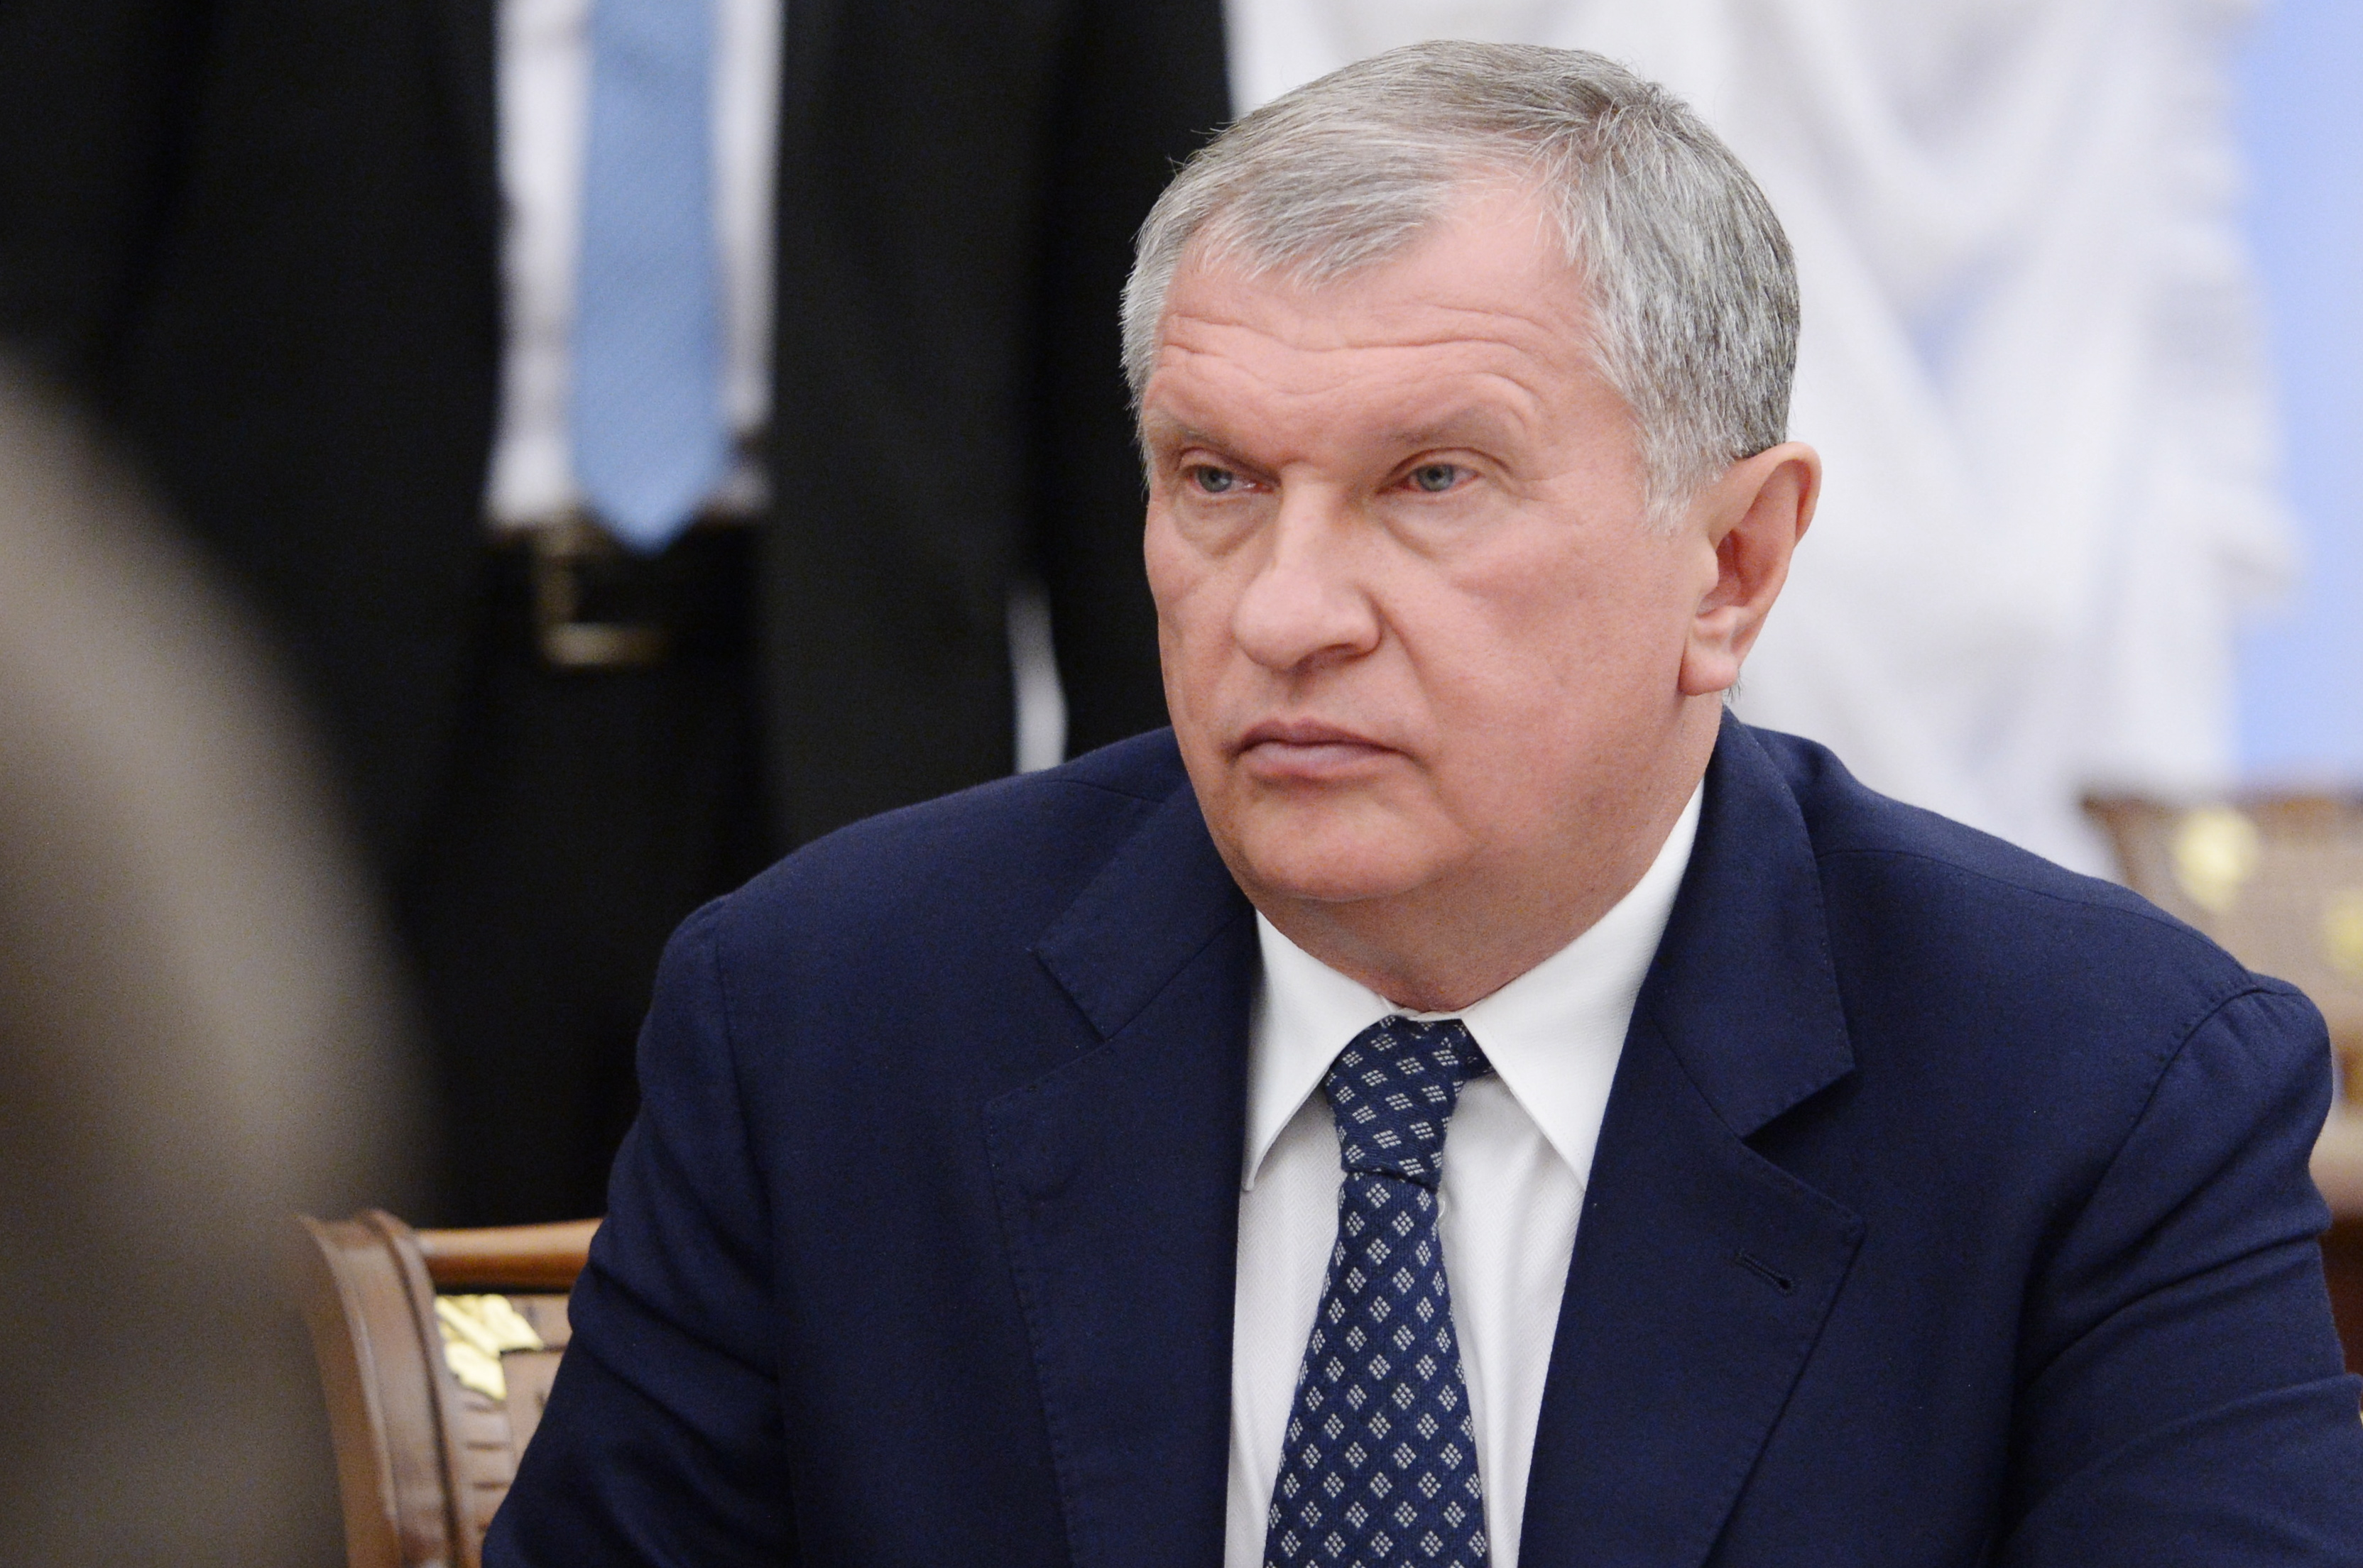 President and Chairman of the management board of Rosneft Igor Sechin